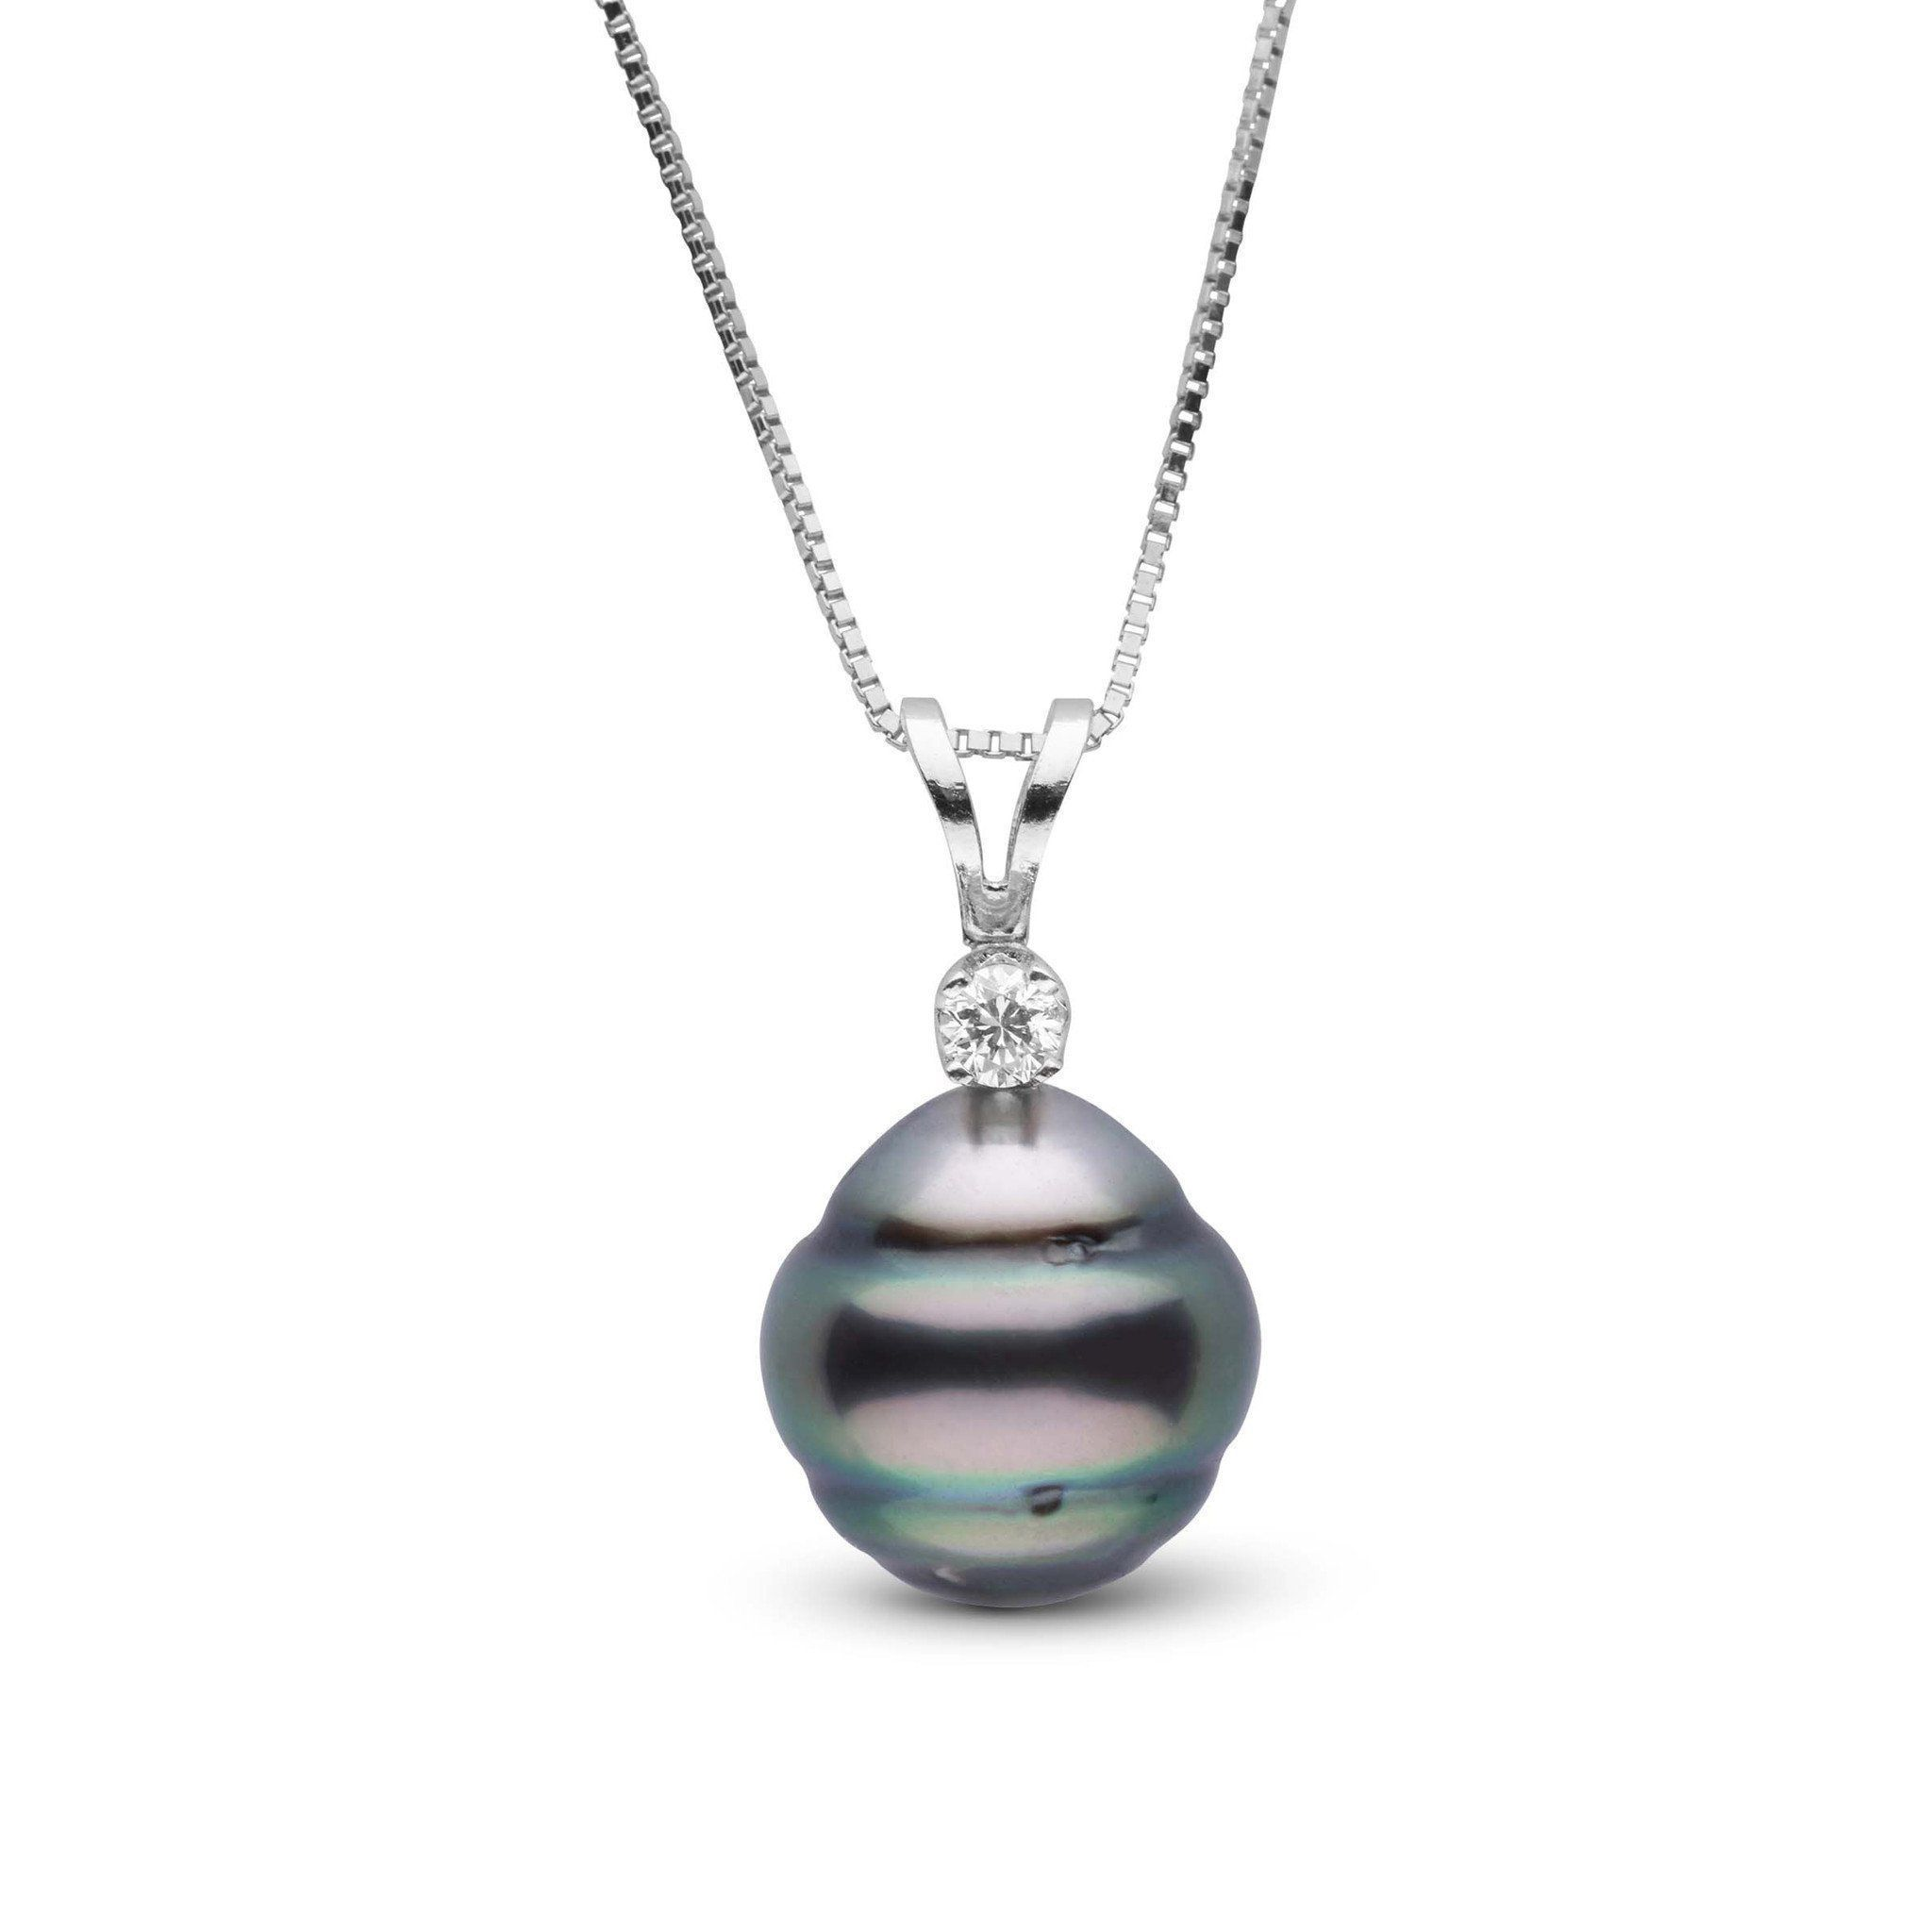 Harmony Collection 9.0-10.0 mm Tahitian Baroque Pearl & Diamond Pendant